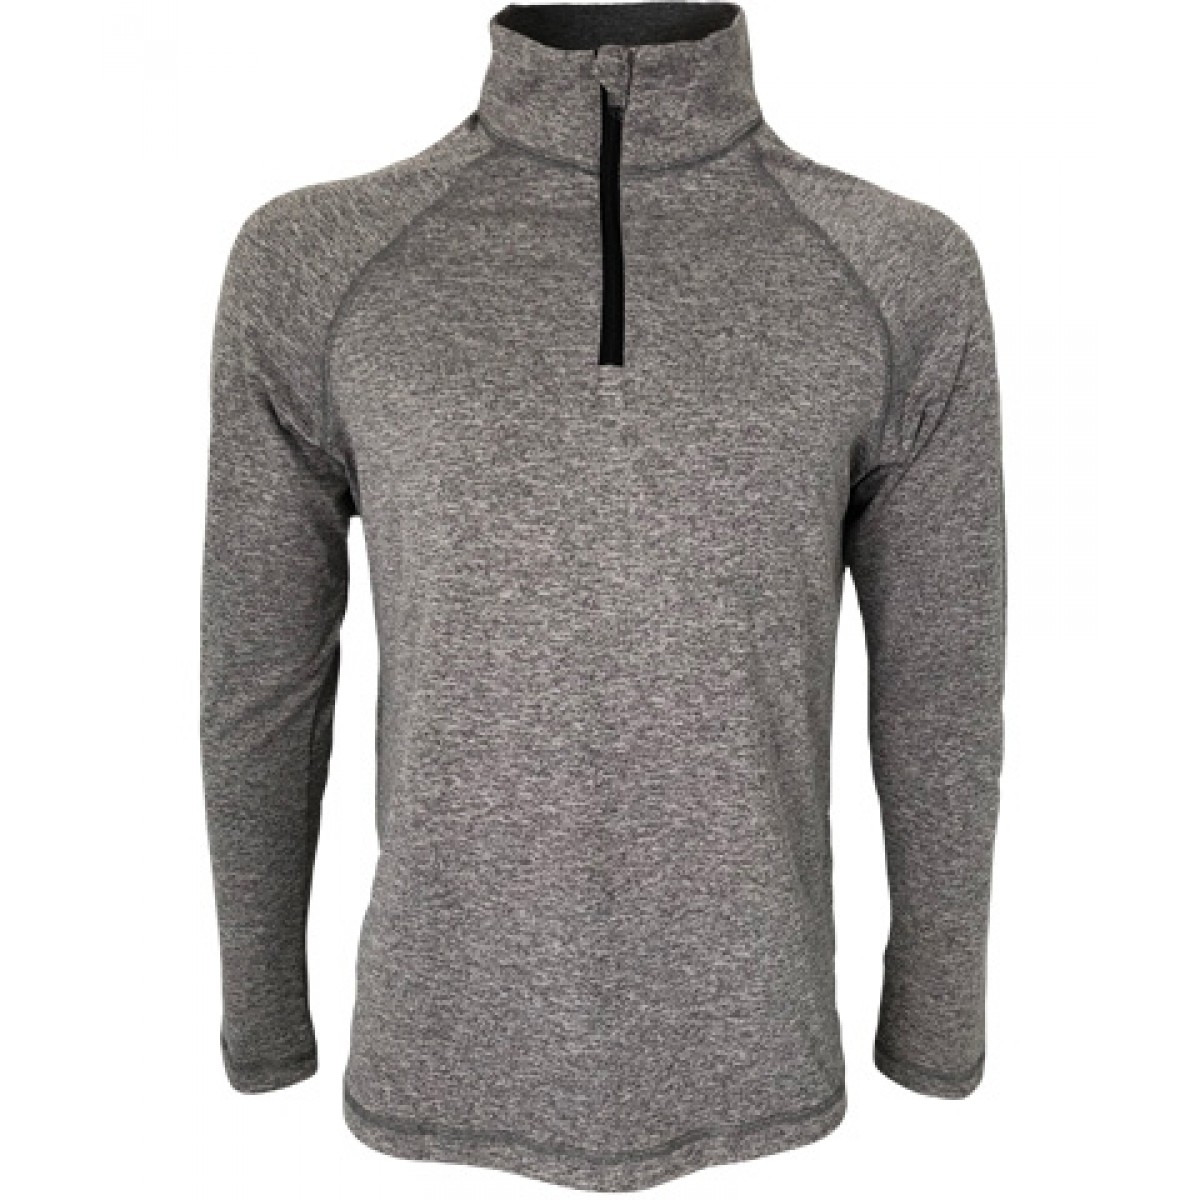 Men's Quarter-Zip Lightweight Pullover-Gray -XL